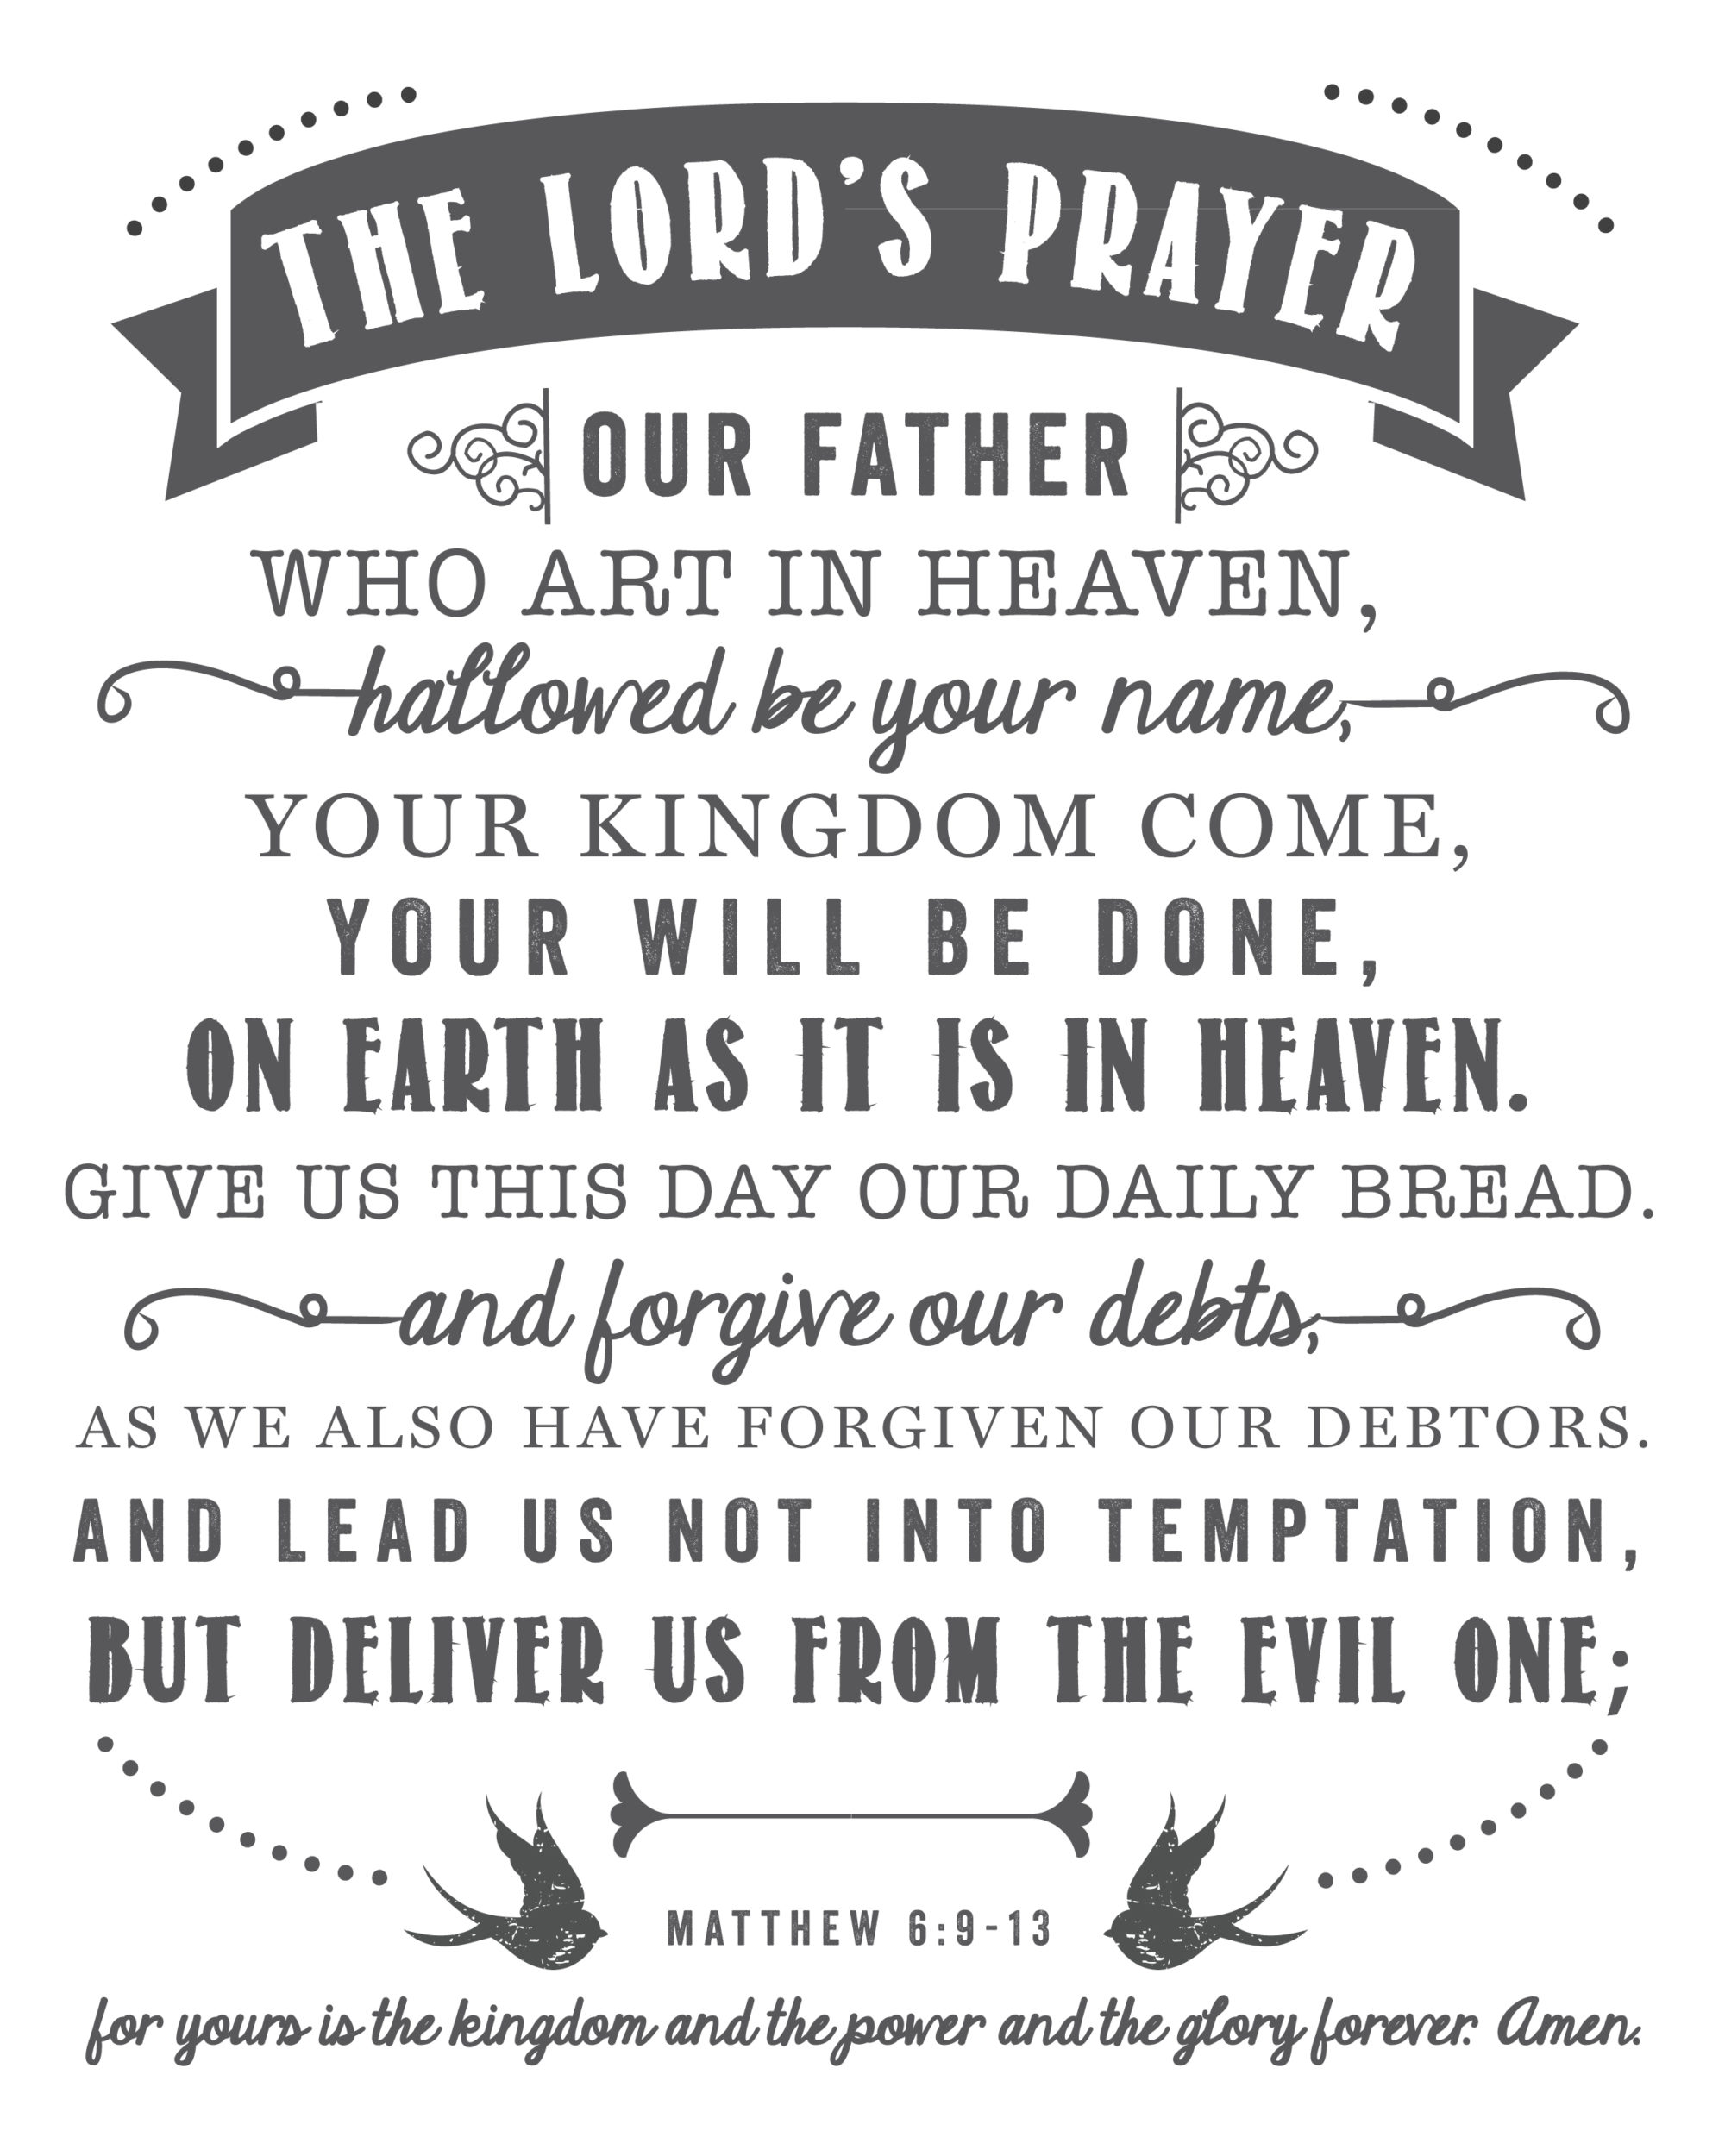 photo relating to Prayer Printable named The Lords Prayer Totally free Printable - Sincerely, Sara D.